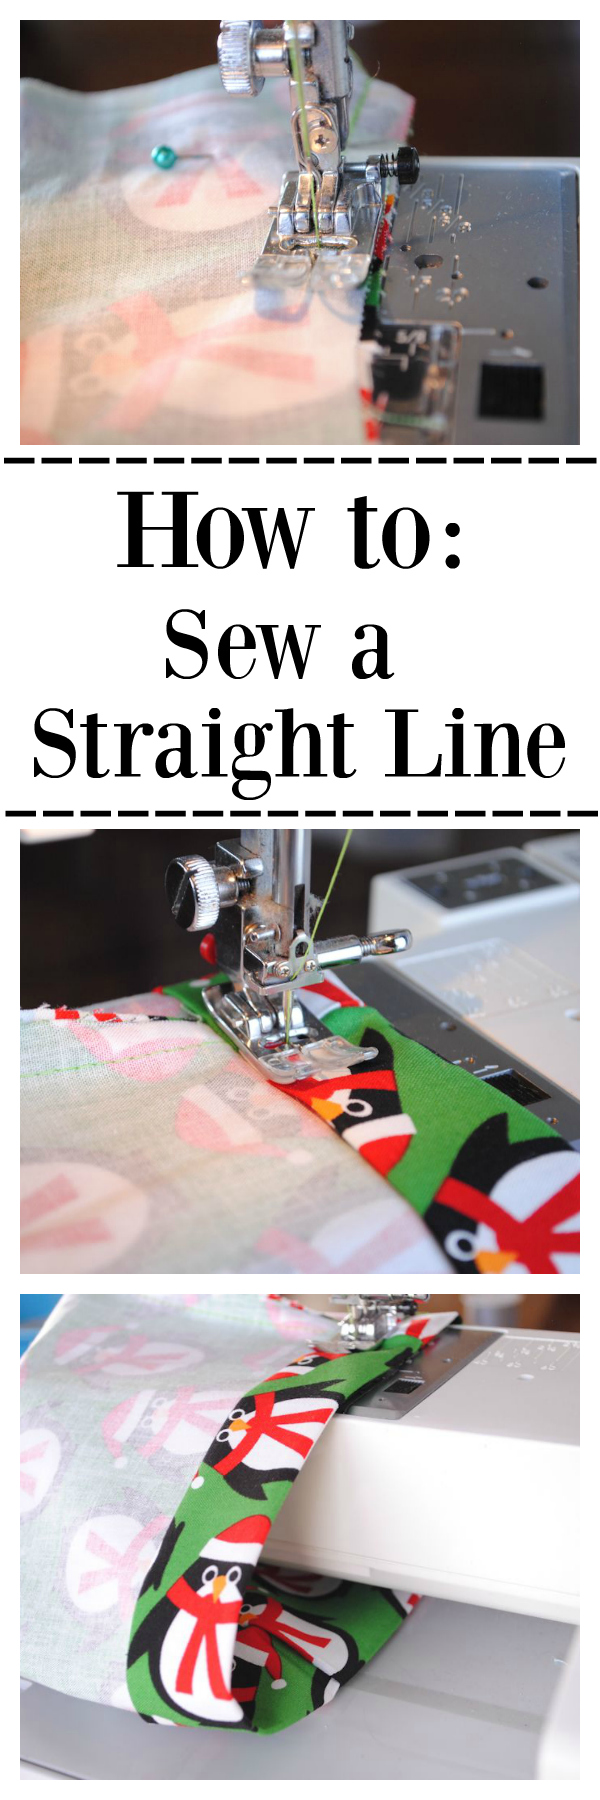 How to Sew a Straight Line and Other Free Sewing Classes